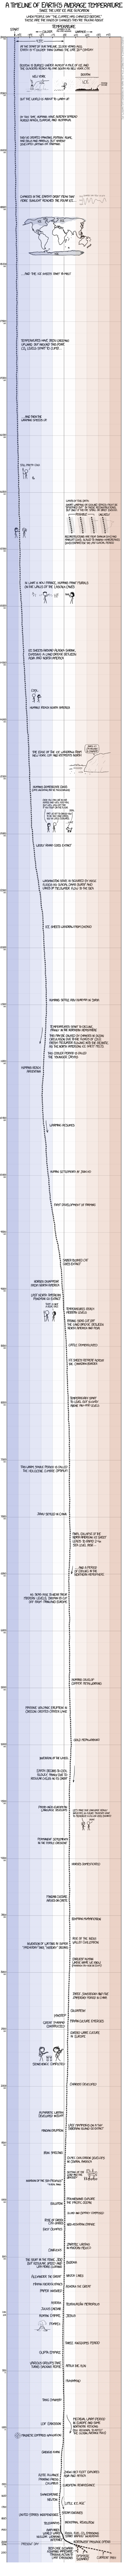 Earth Temperature Timeline by XKCD